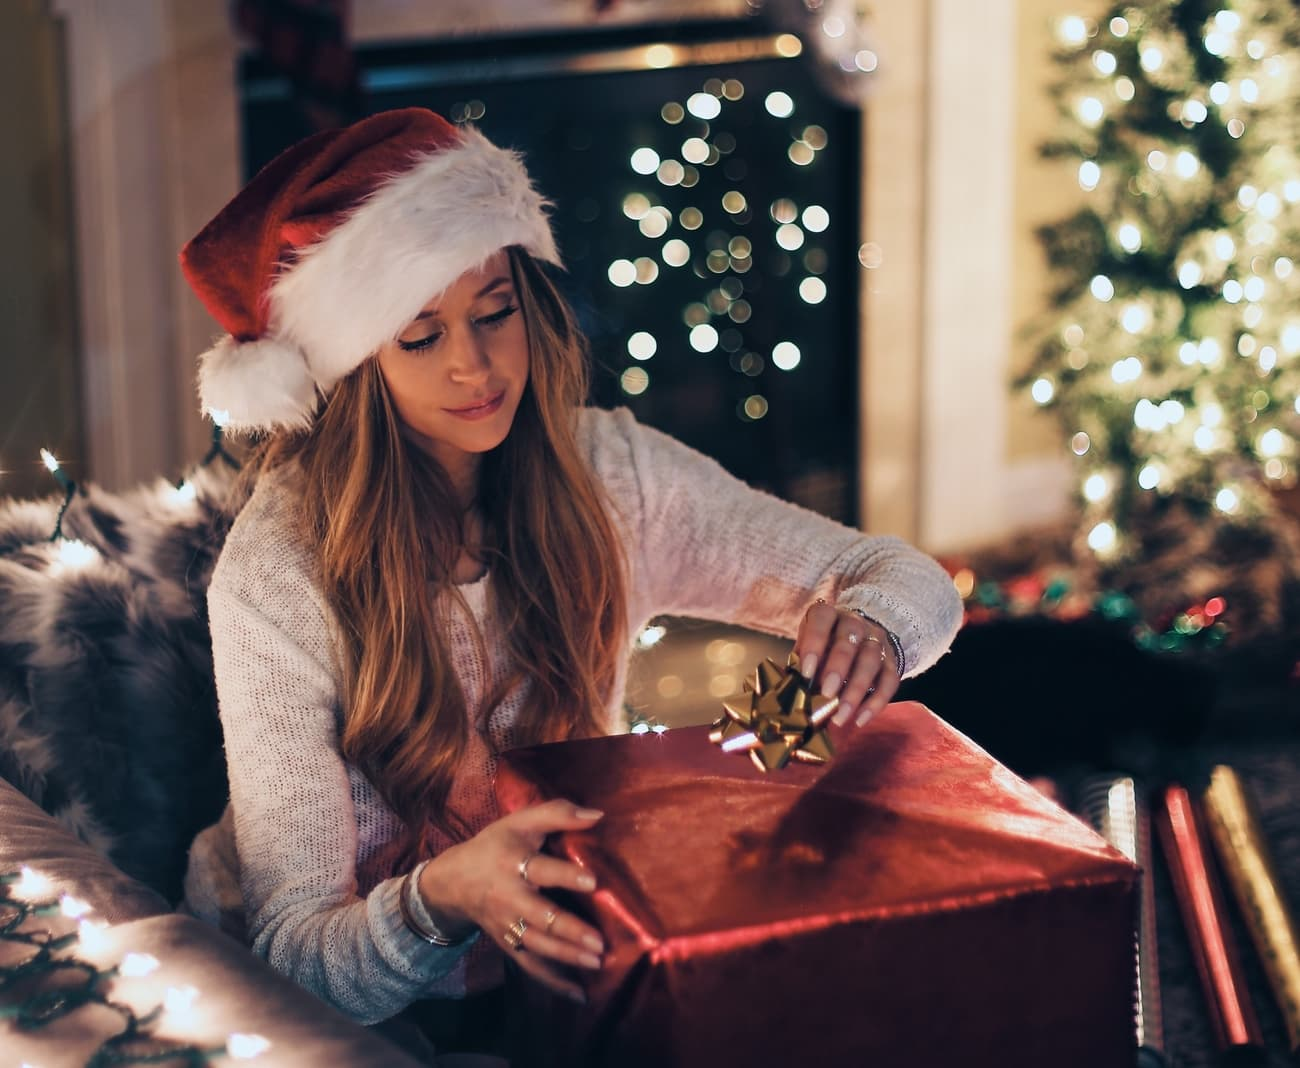 Do you buy yourself a Christmas present? Well you're not alone